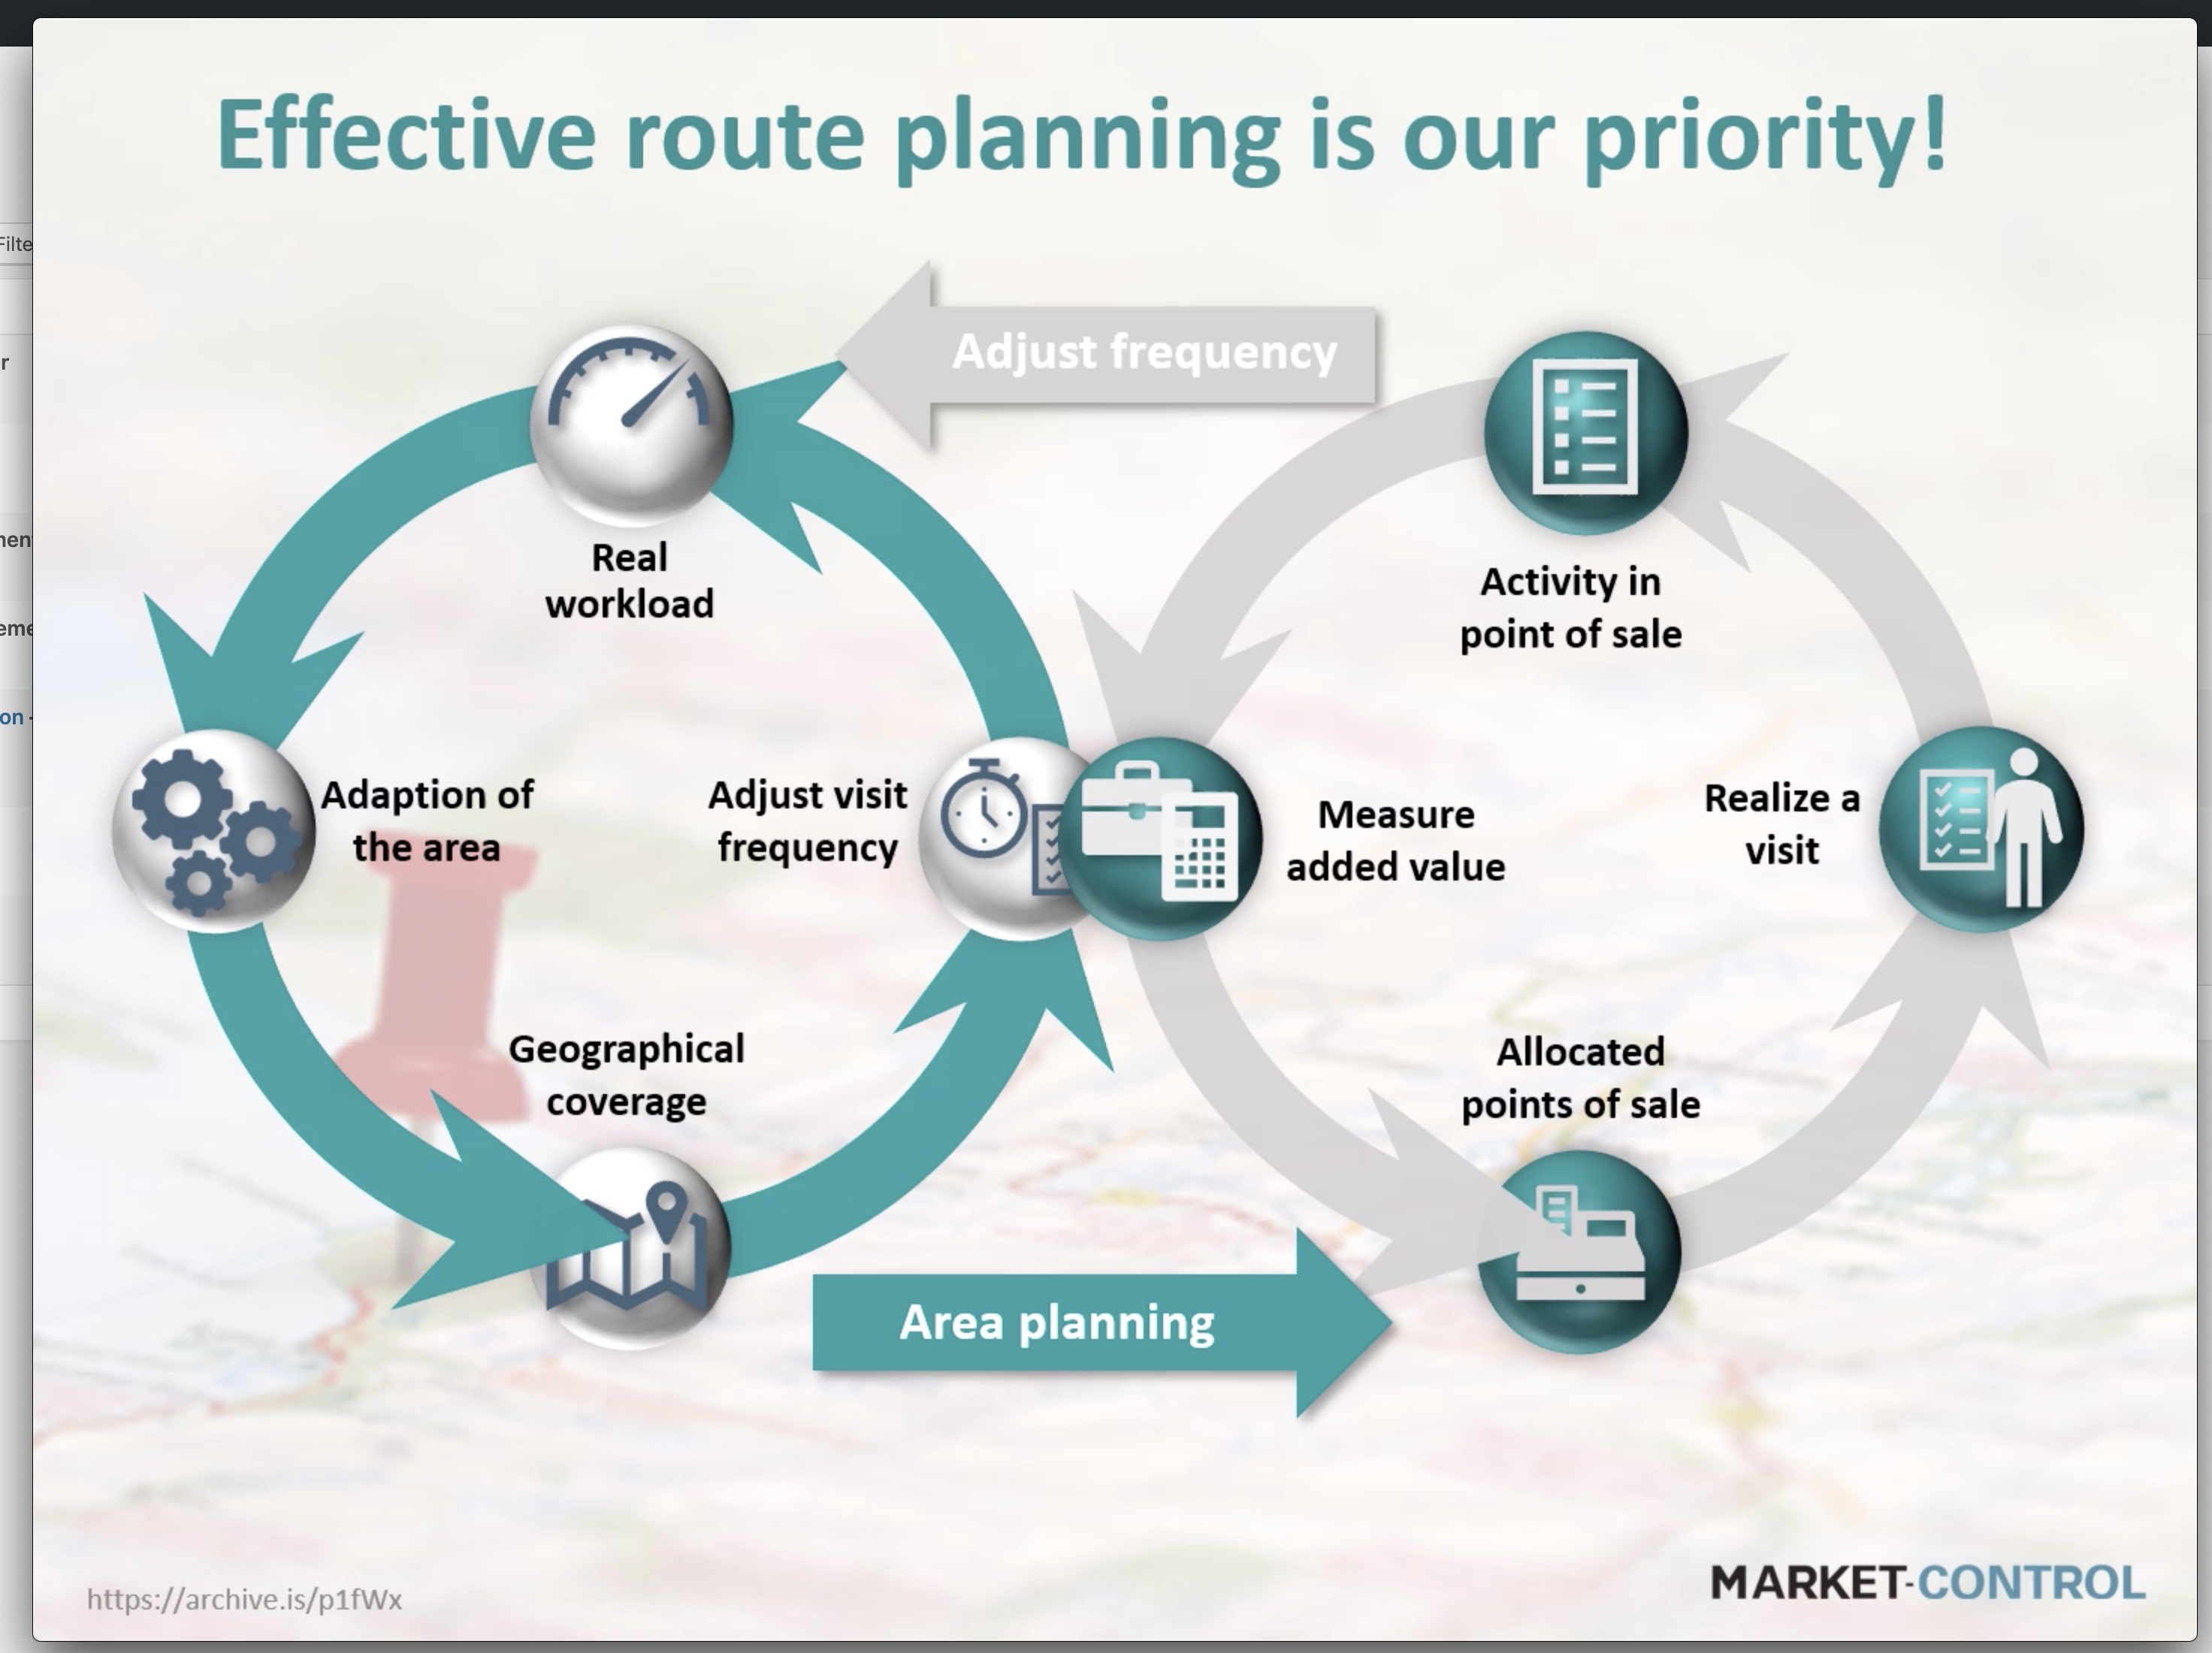 Effective route planning is our priority!